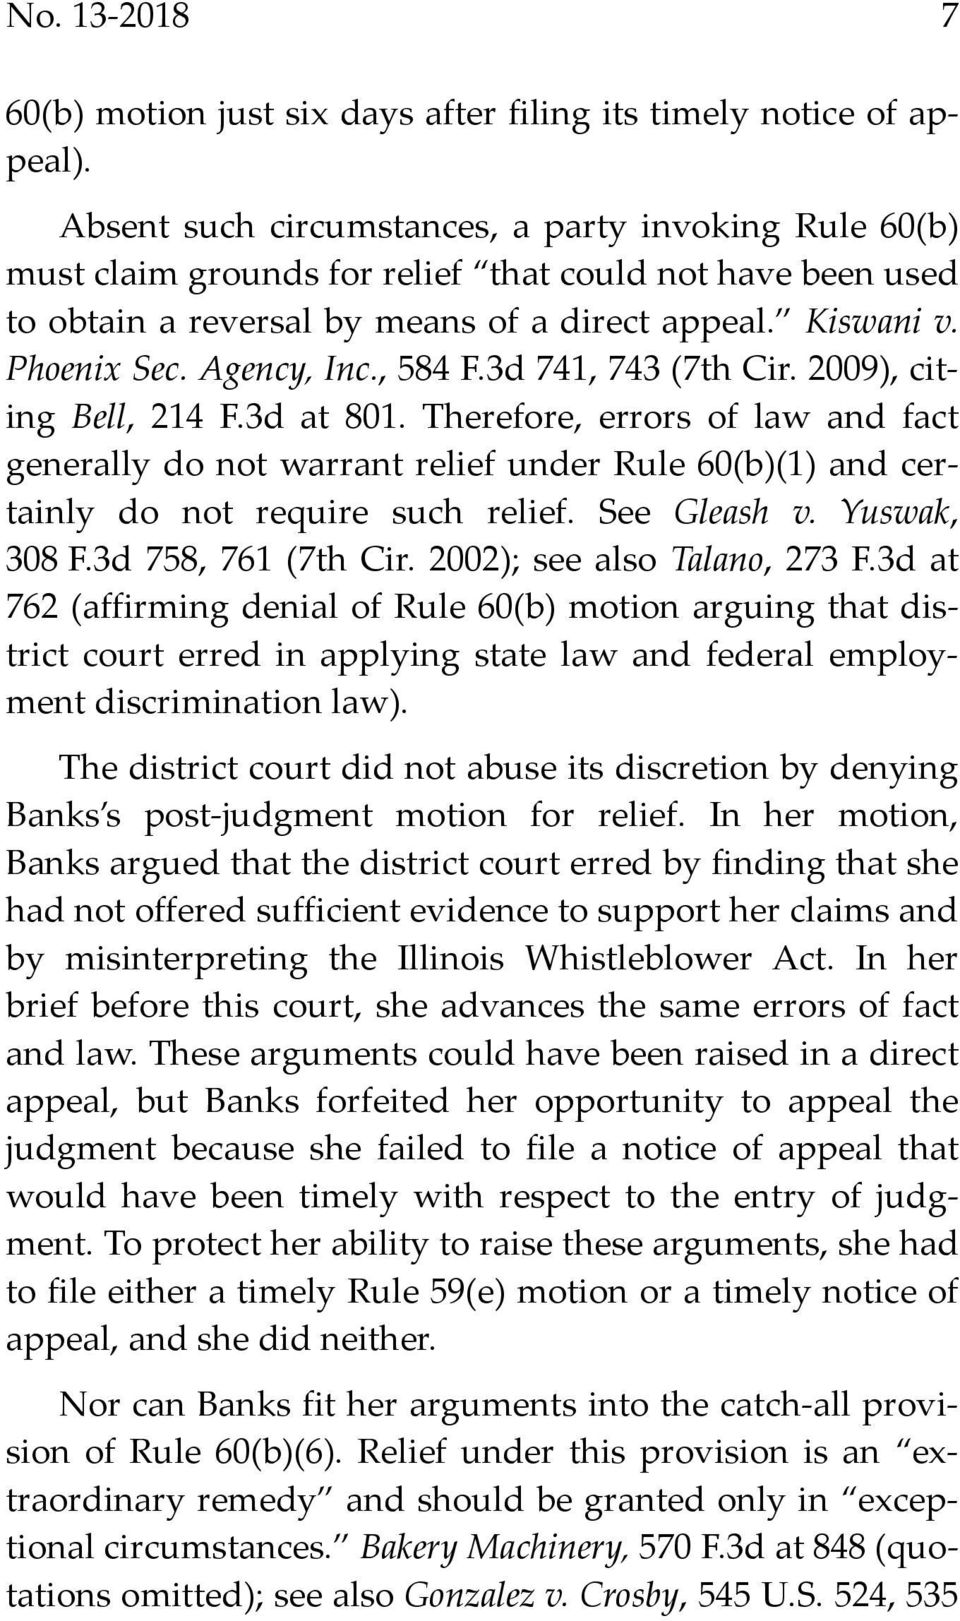 Agency, Inc., 584 F.3d 741, 743 (7th Cir. 2009), citing Bell, 214 F.3d at 801.